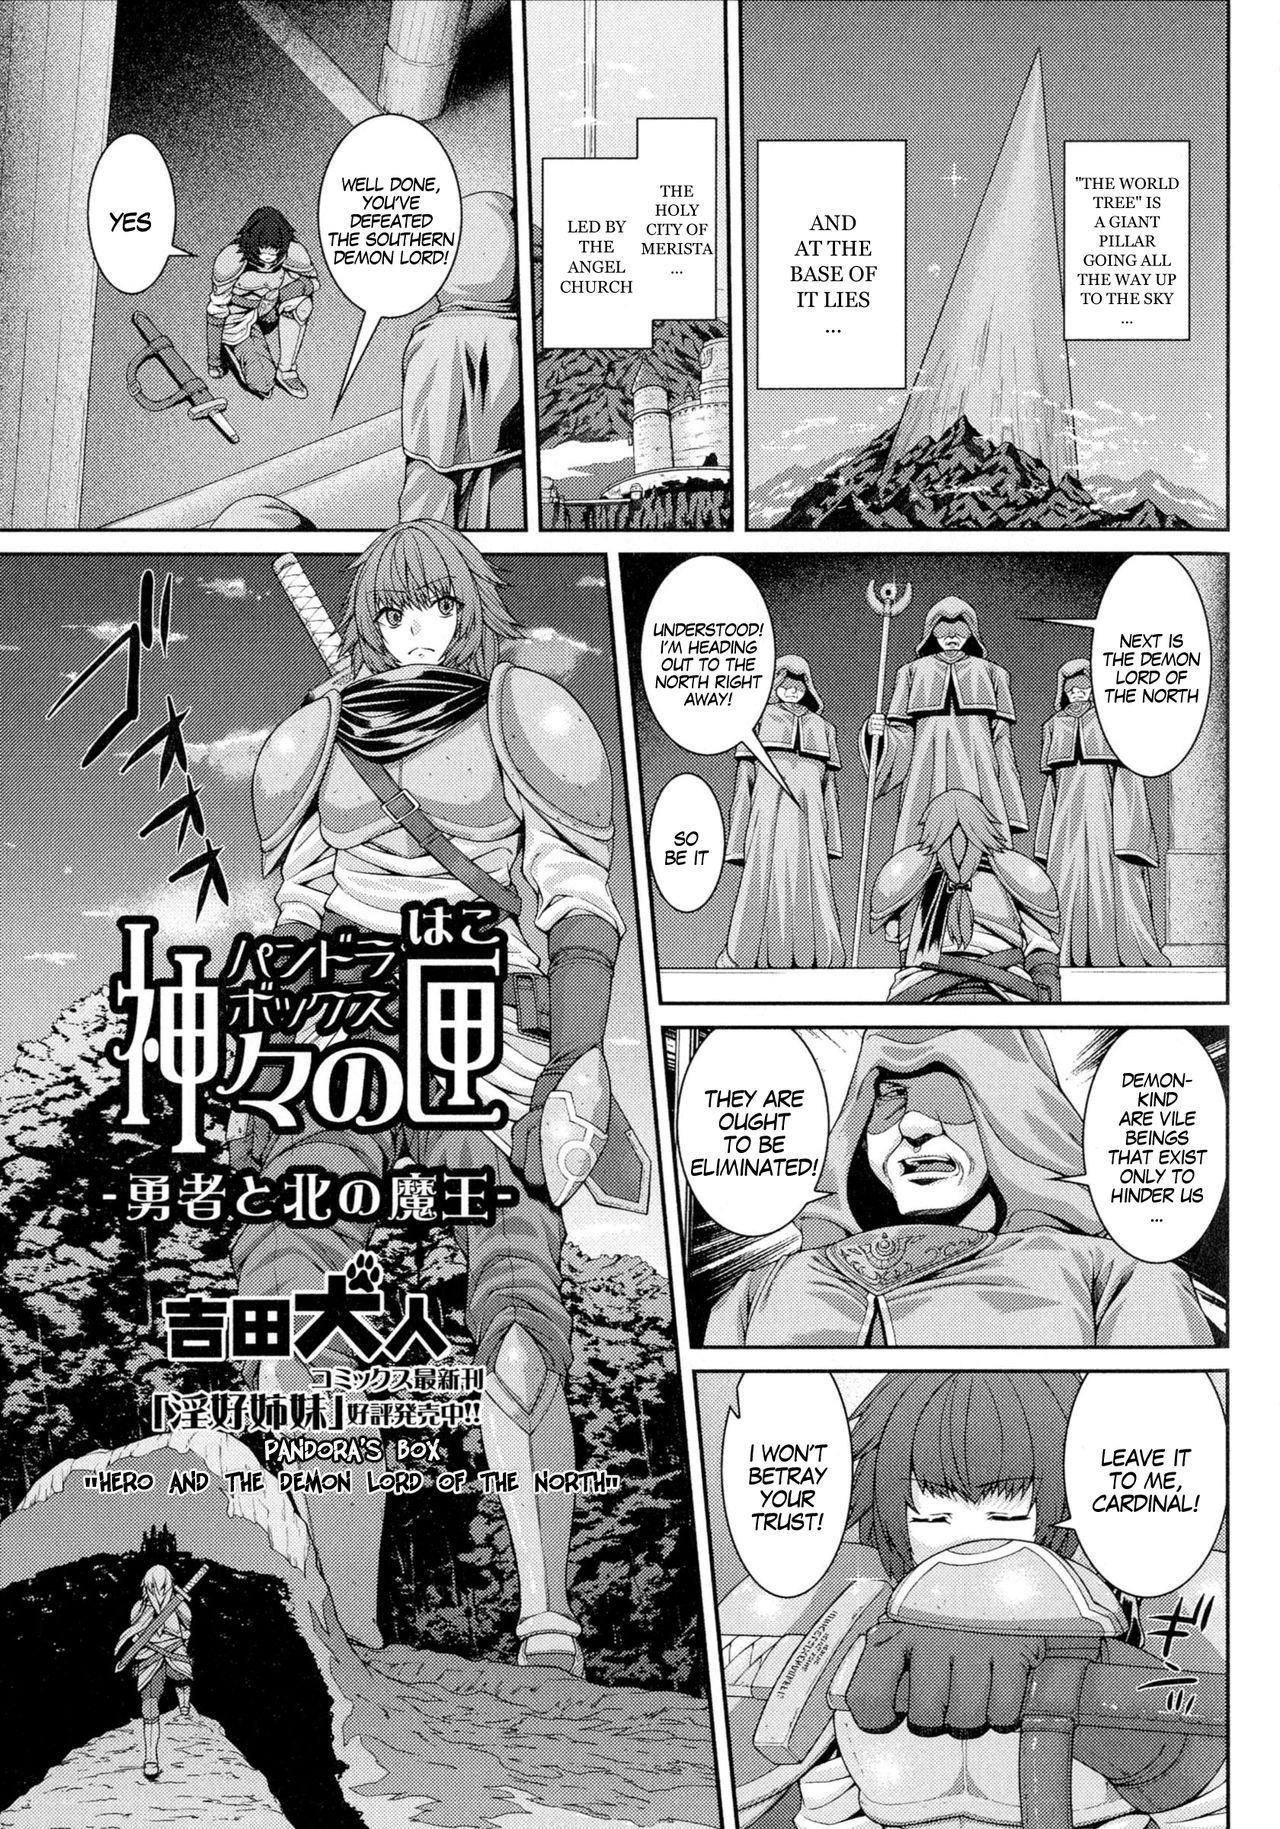 """Pandora's Box """"Hero And The Demon Lord Of The North"""" 0"""